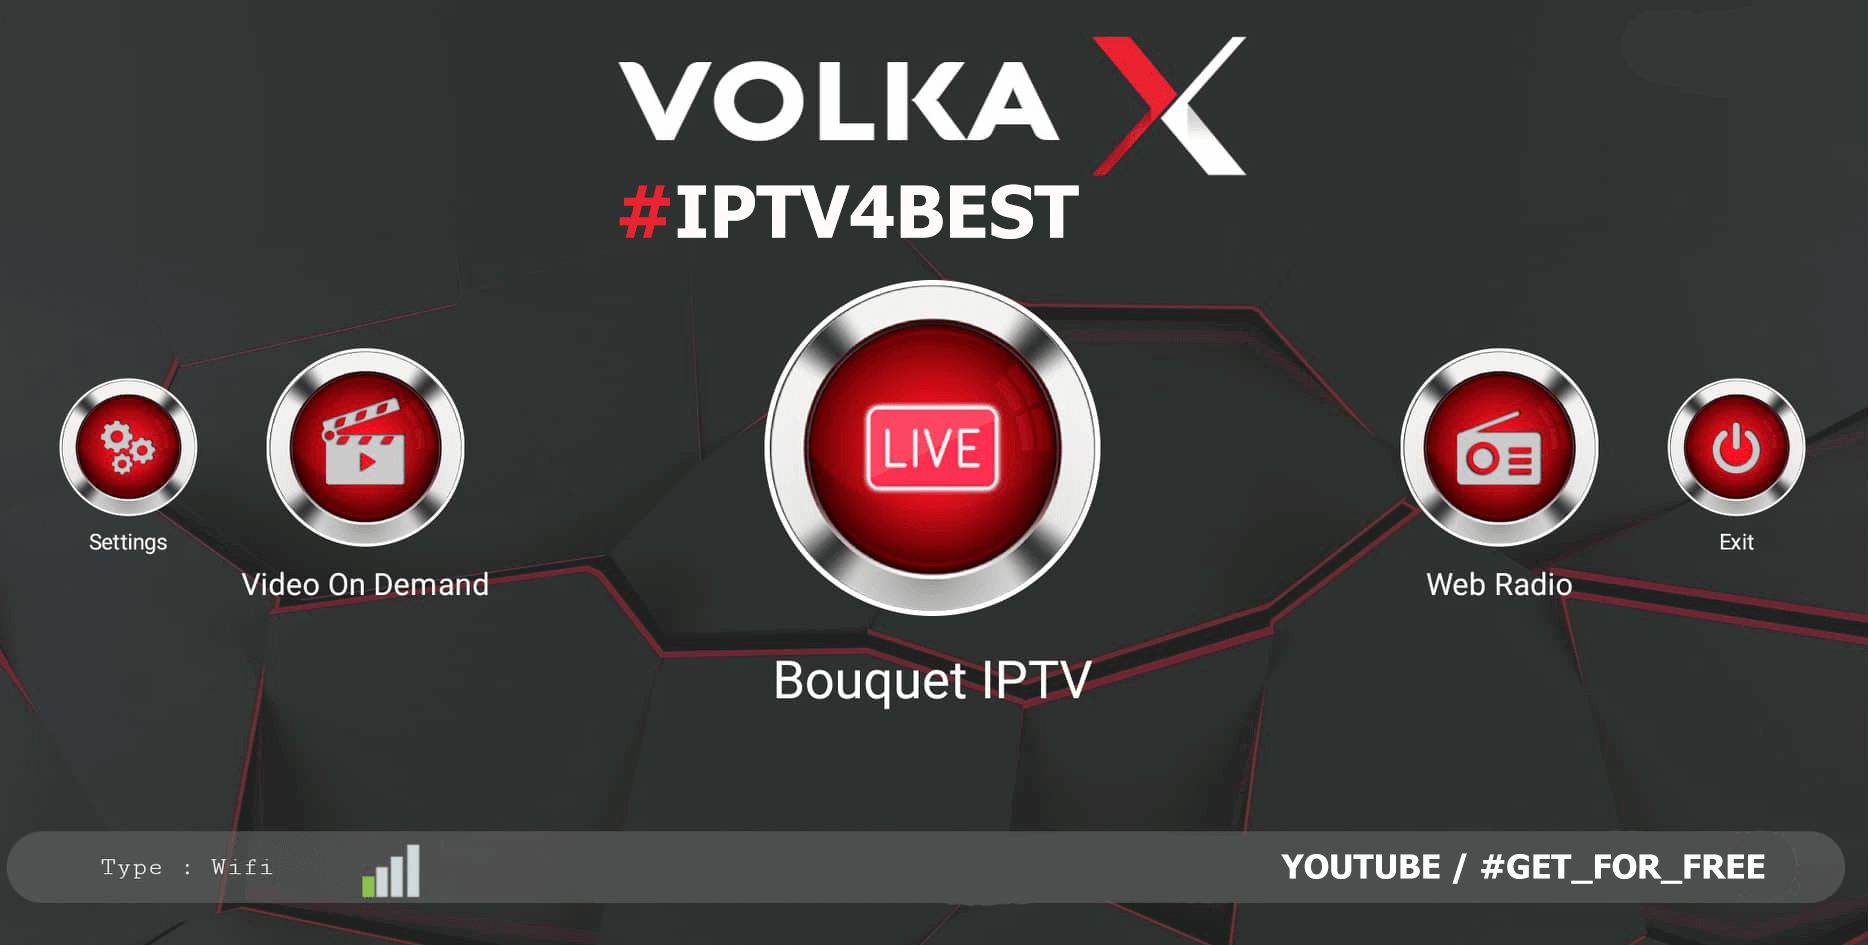 VolkaX IPTv APK + Activation Code By IPTV4BEST